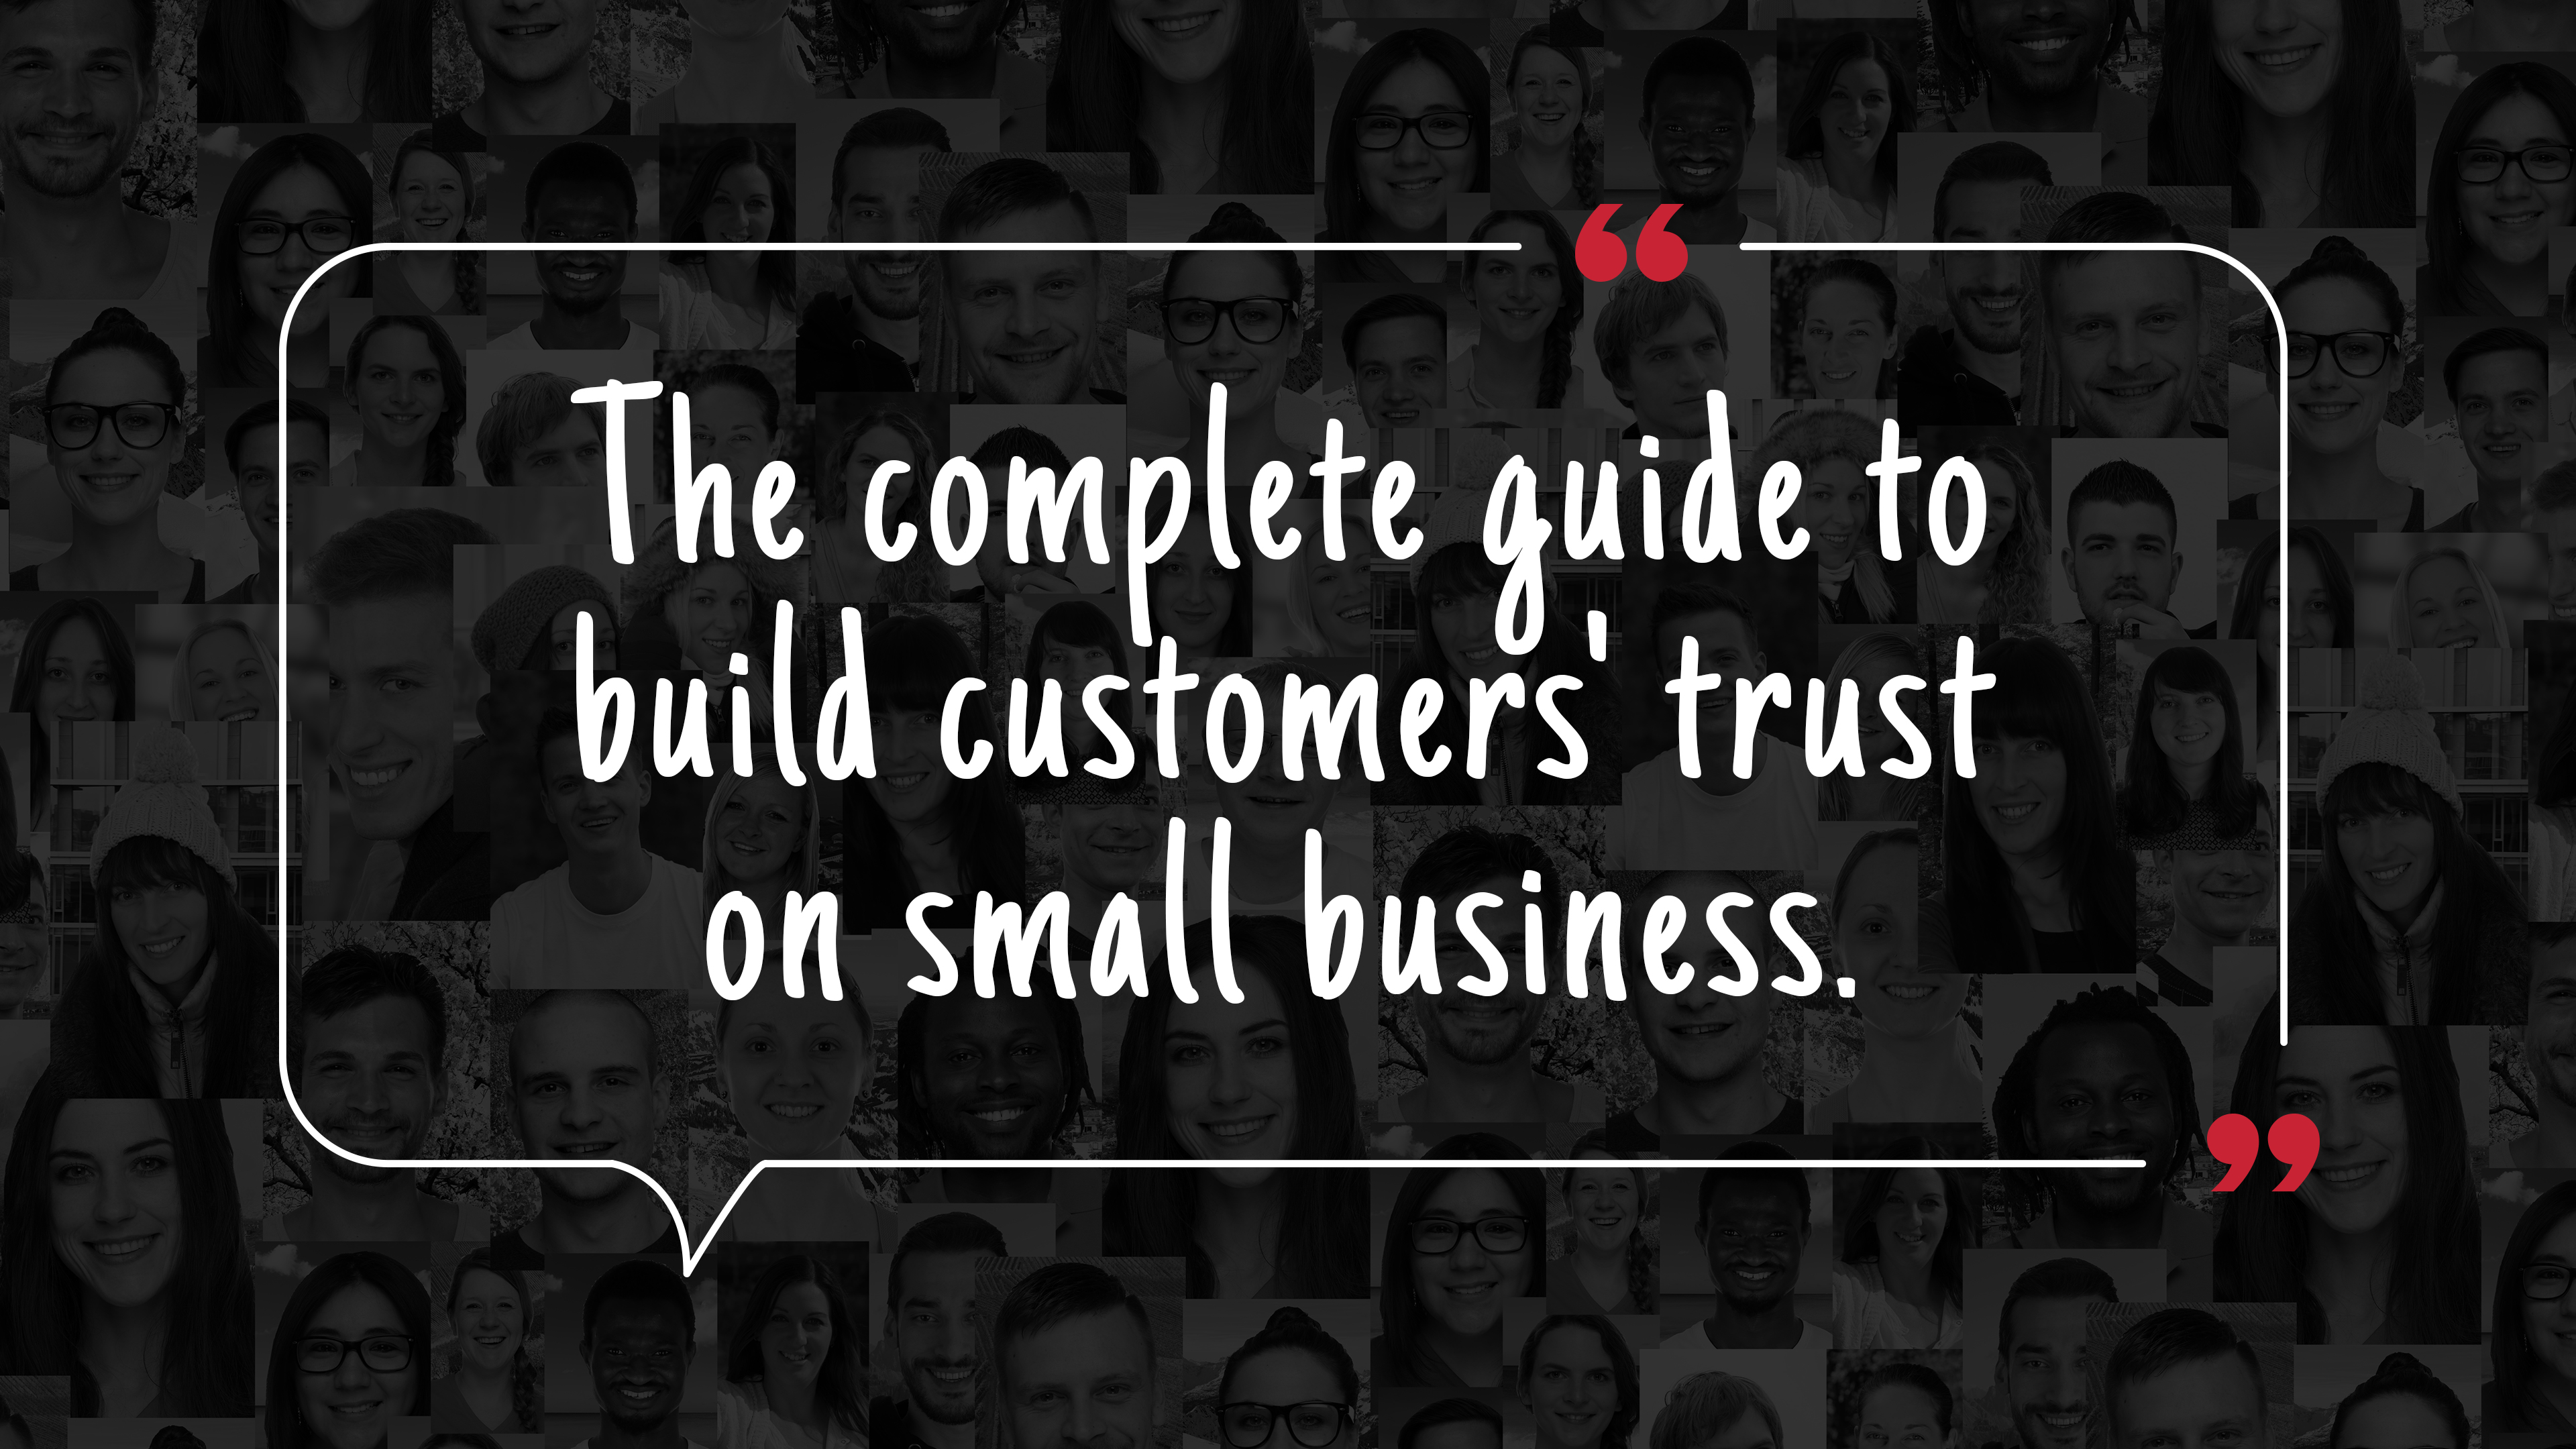 5 Ways small businesses can build customer trust using email marketing